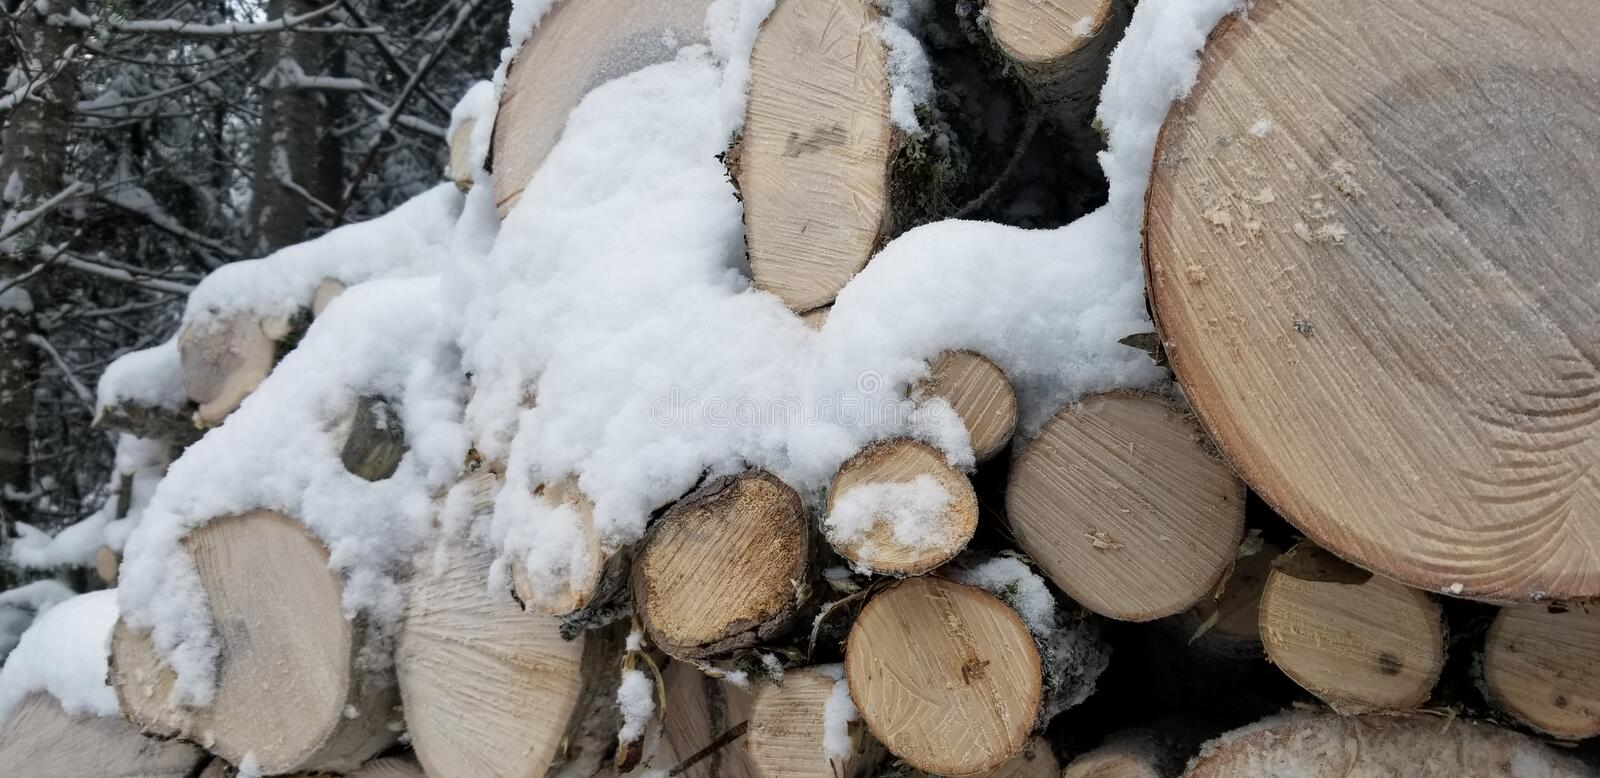 Cord of wood pile in the forest. Full of snow.  White winter. Wood log. Cord of wood pile in the forest. Full of snow stock photo